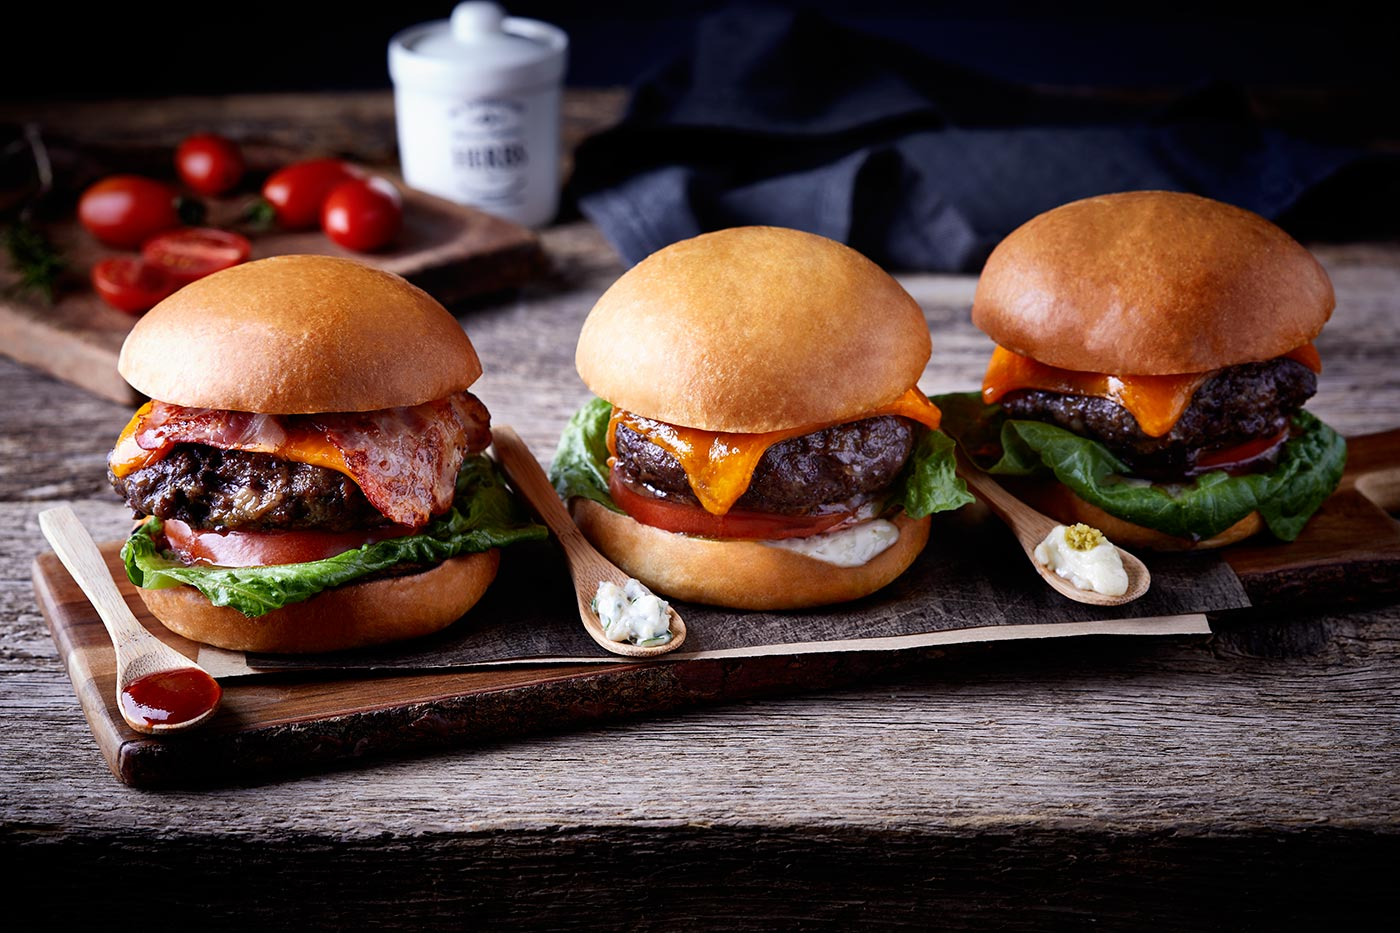 BEST DELIVERY FOOD FLANK STEAK BURGERS